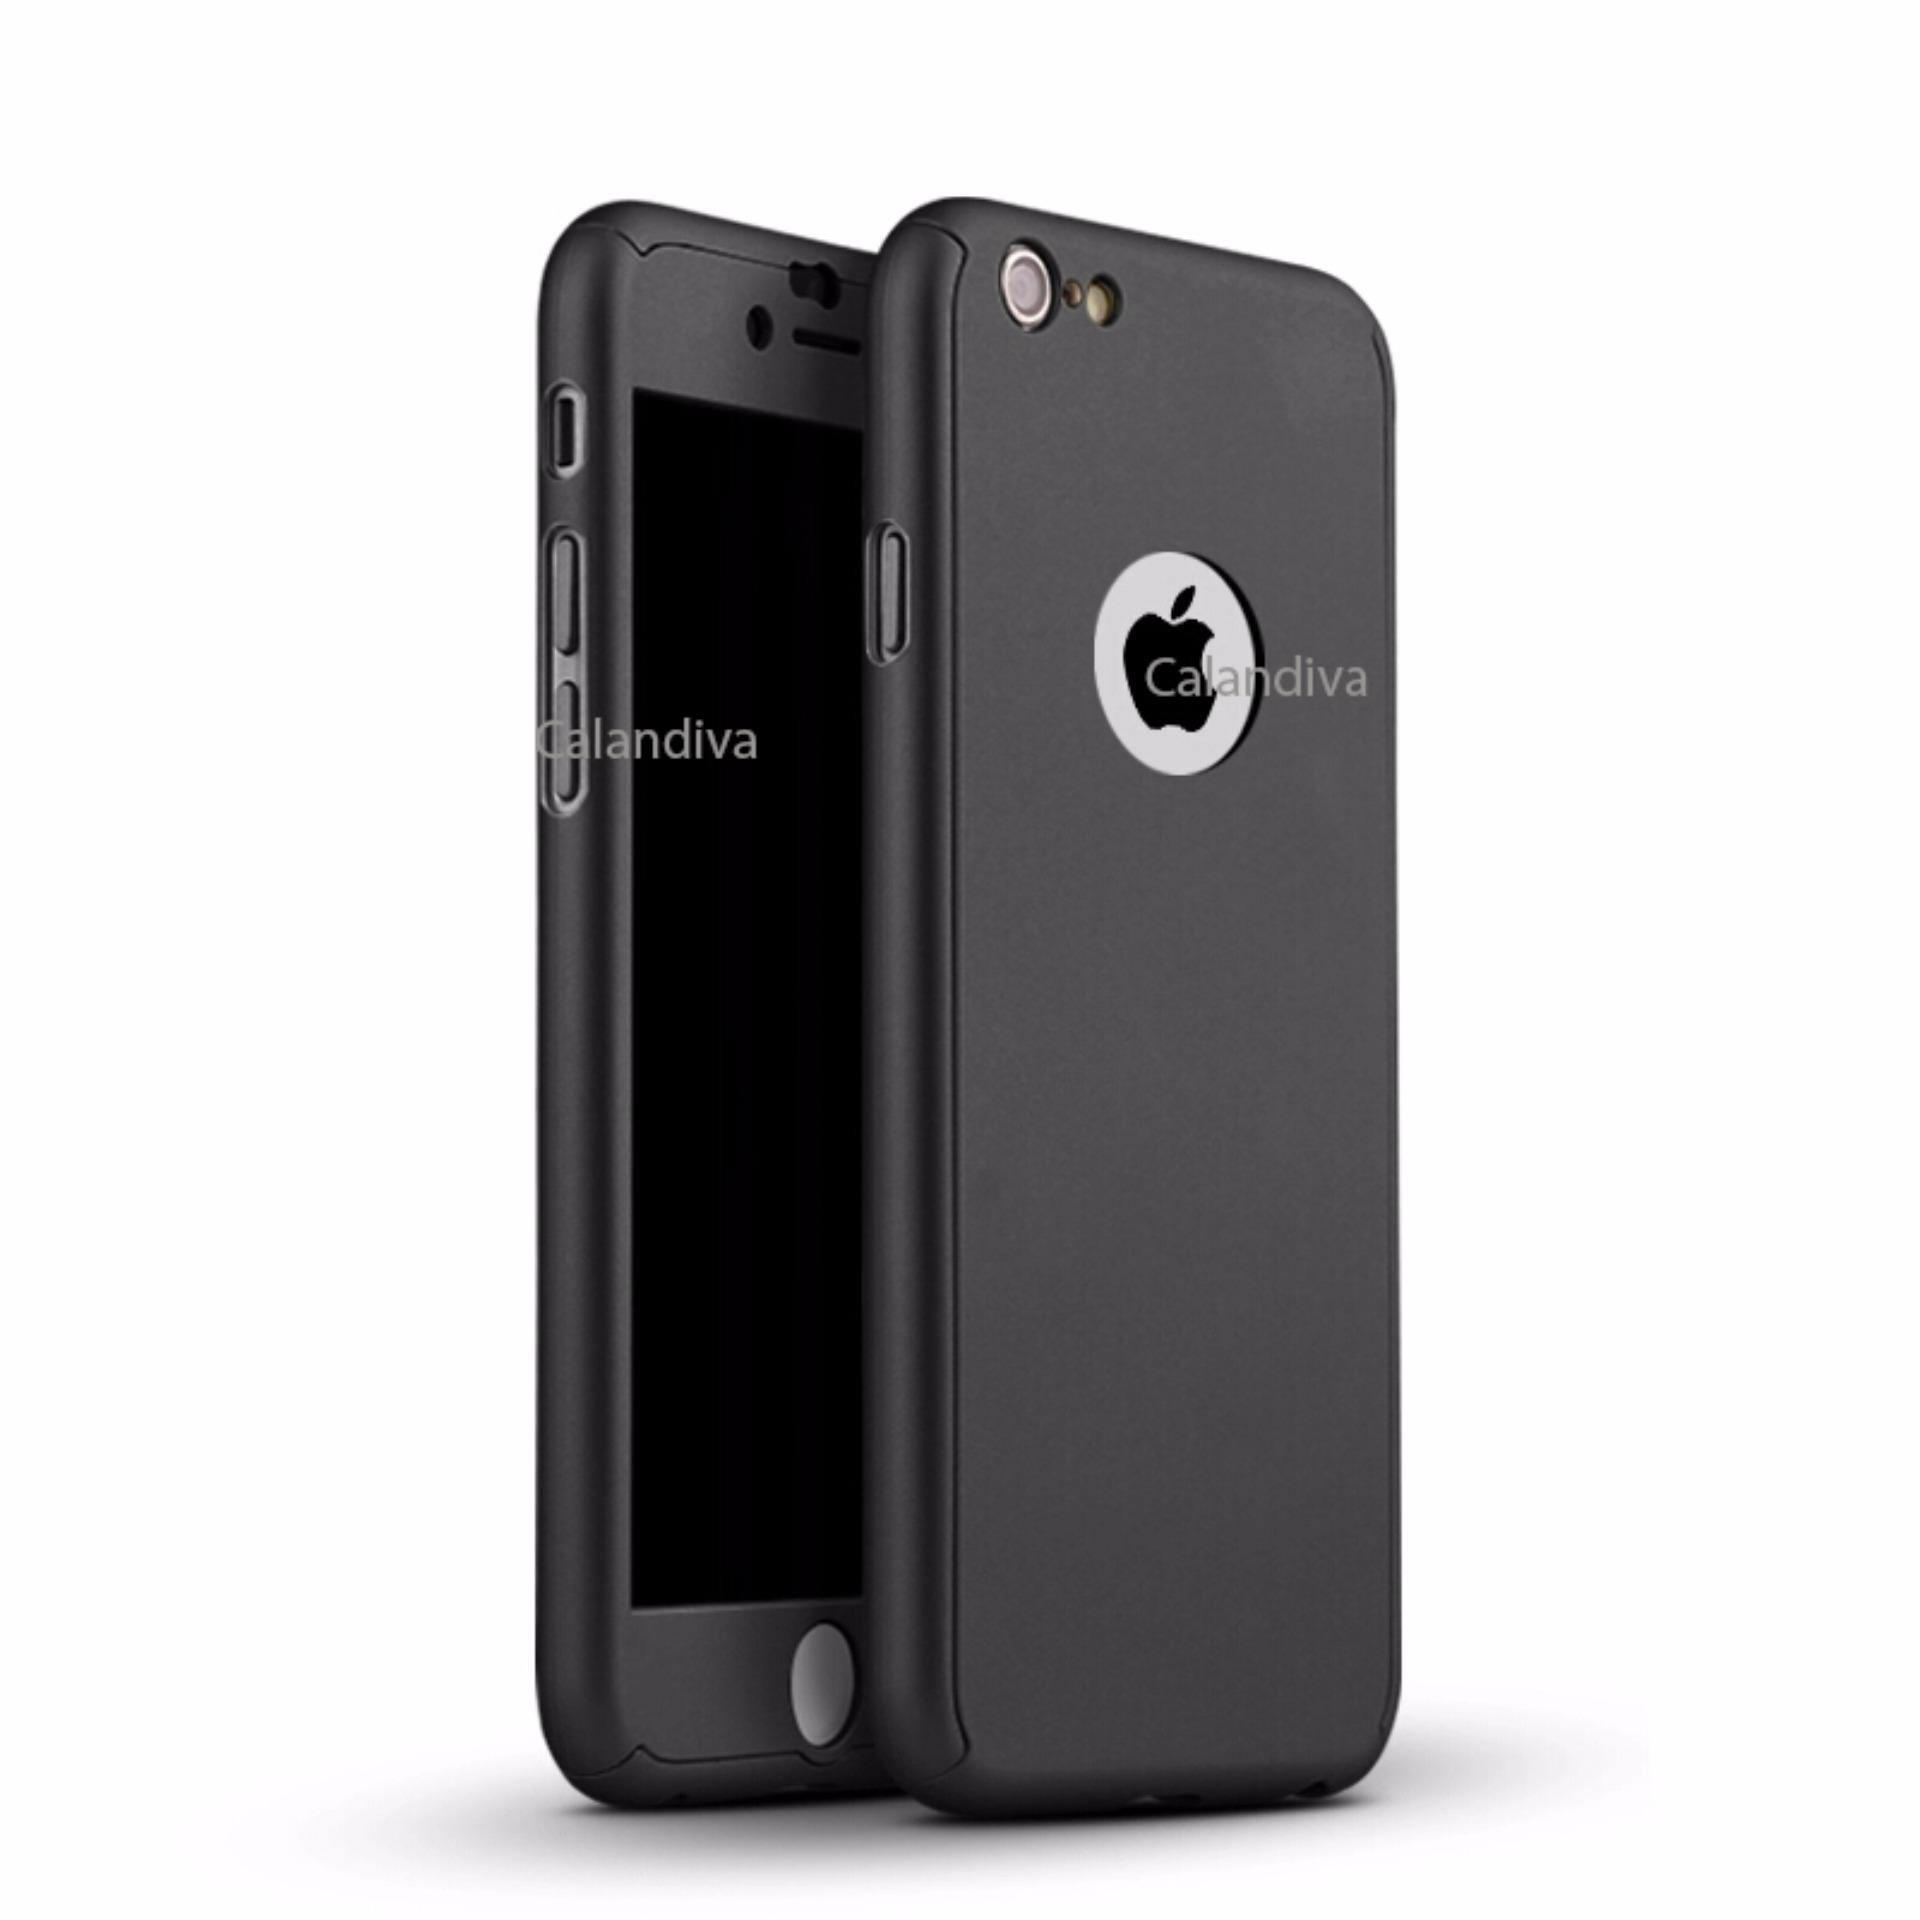 Calandiva Front Back Protection Case 360 Degree With Tempered Glass for Iphone 6 6s 4 7